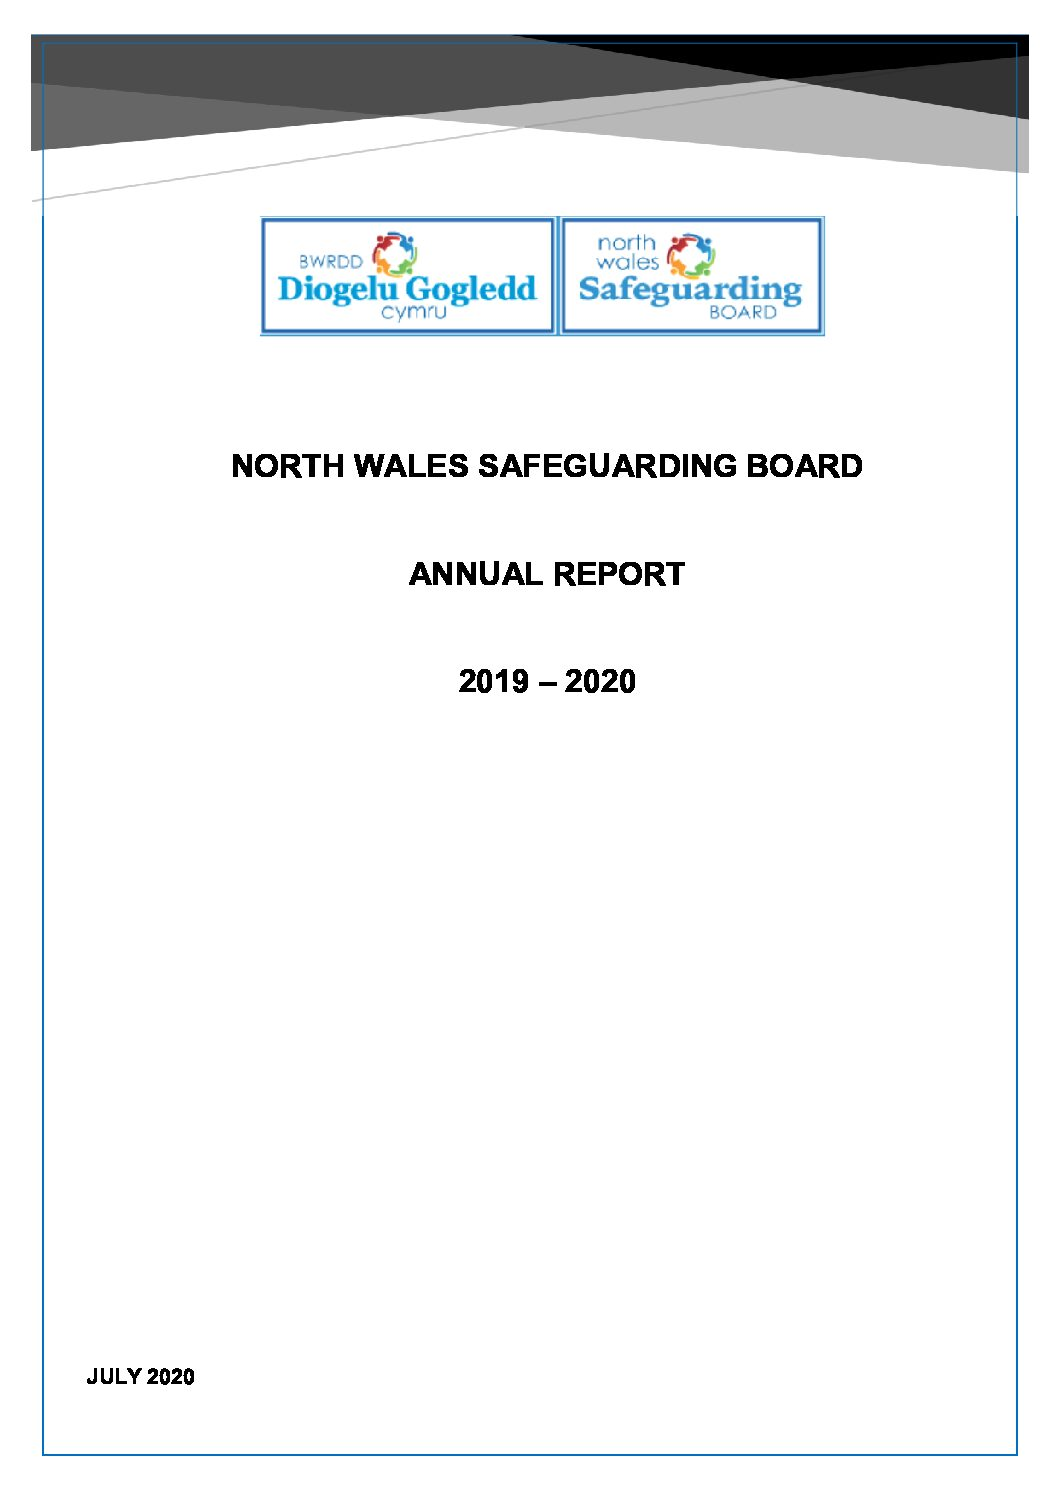 NWSB Annual Report 2019 – 2020